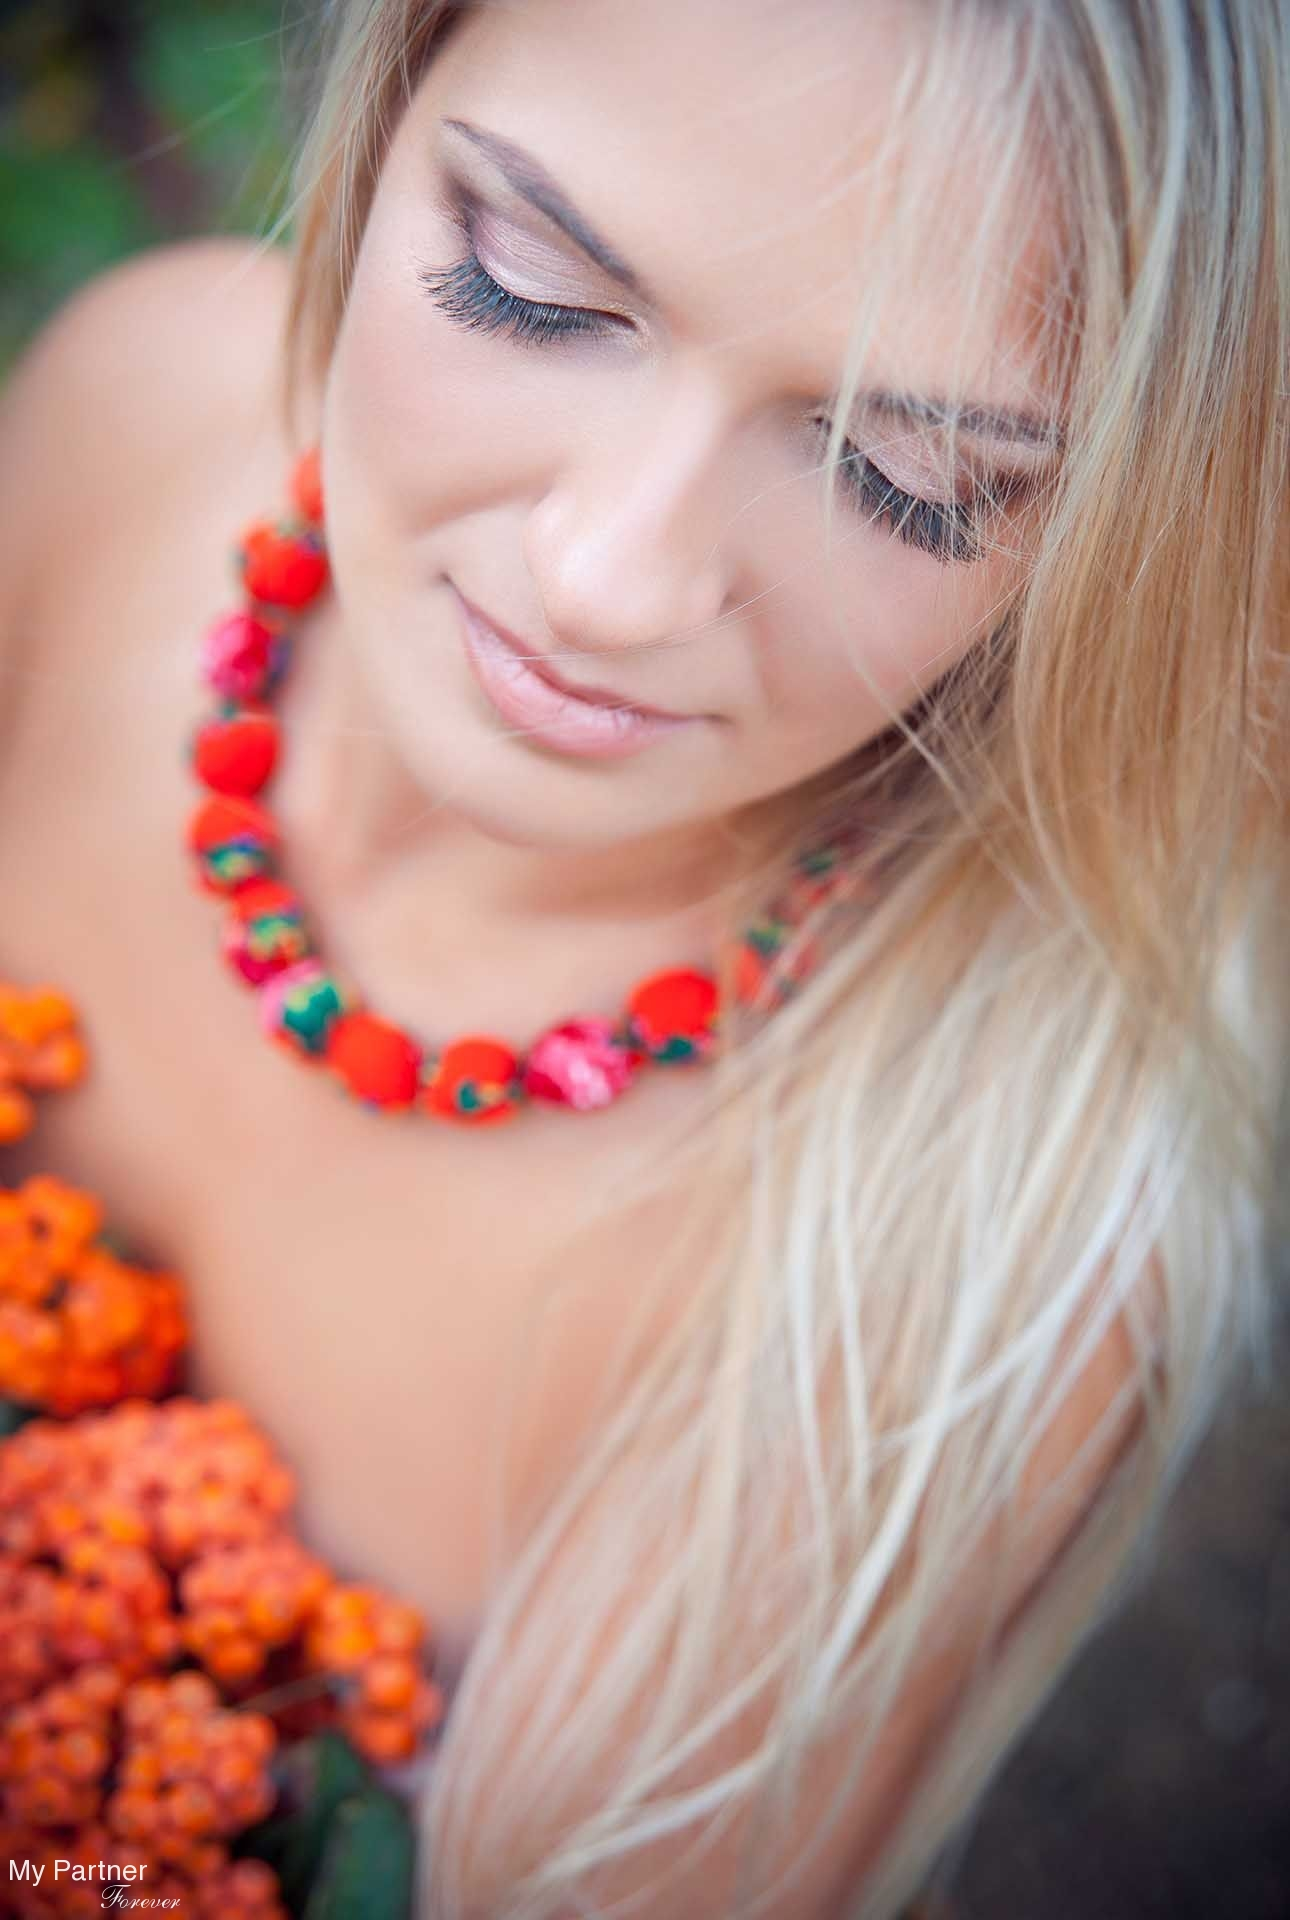 Pretty Girl from Ukraine - Nataliya from Zaporozhye, Ukraine